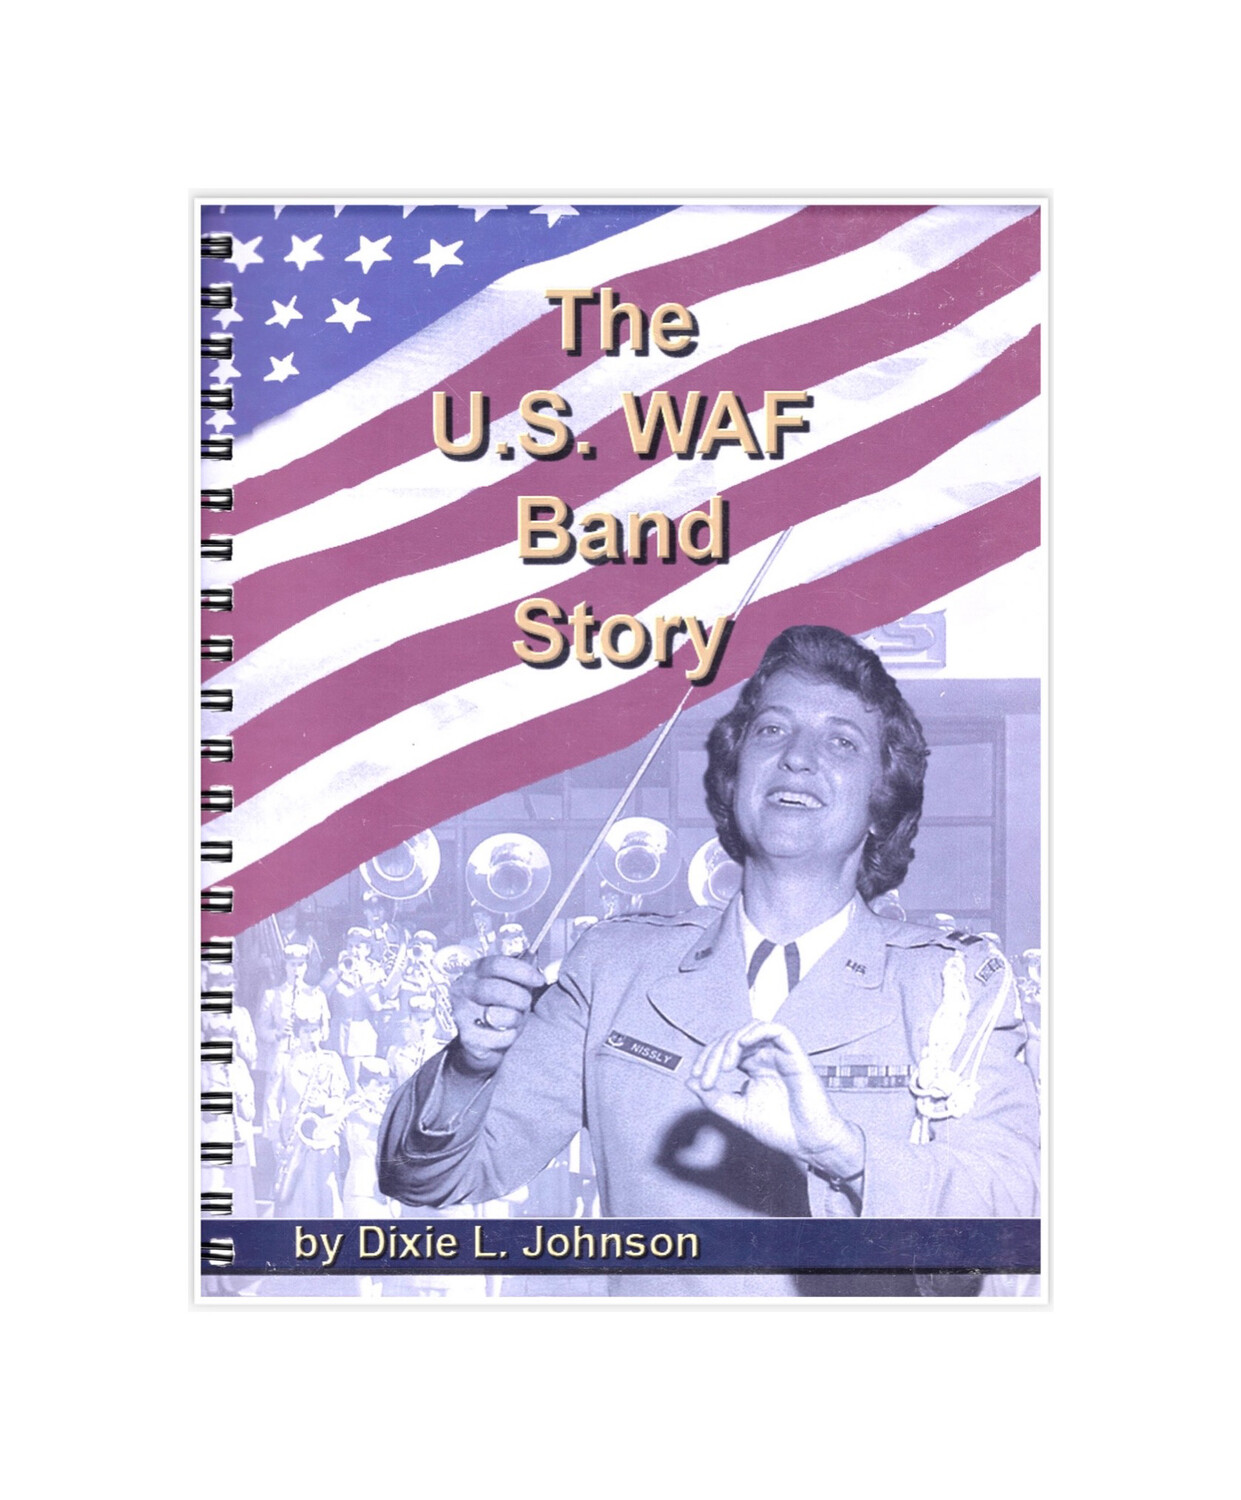 The U. S. WAF Band Story by Dixie L. Johnson